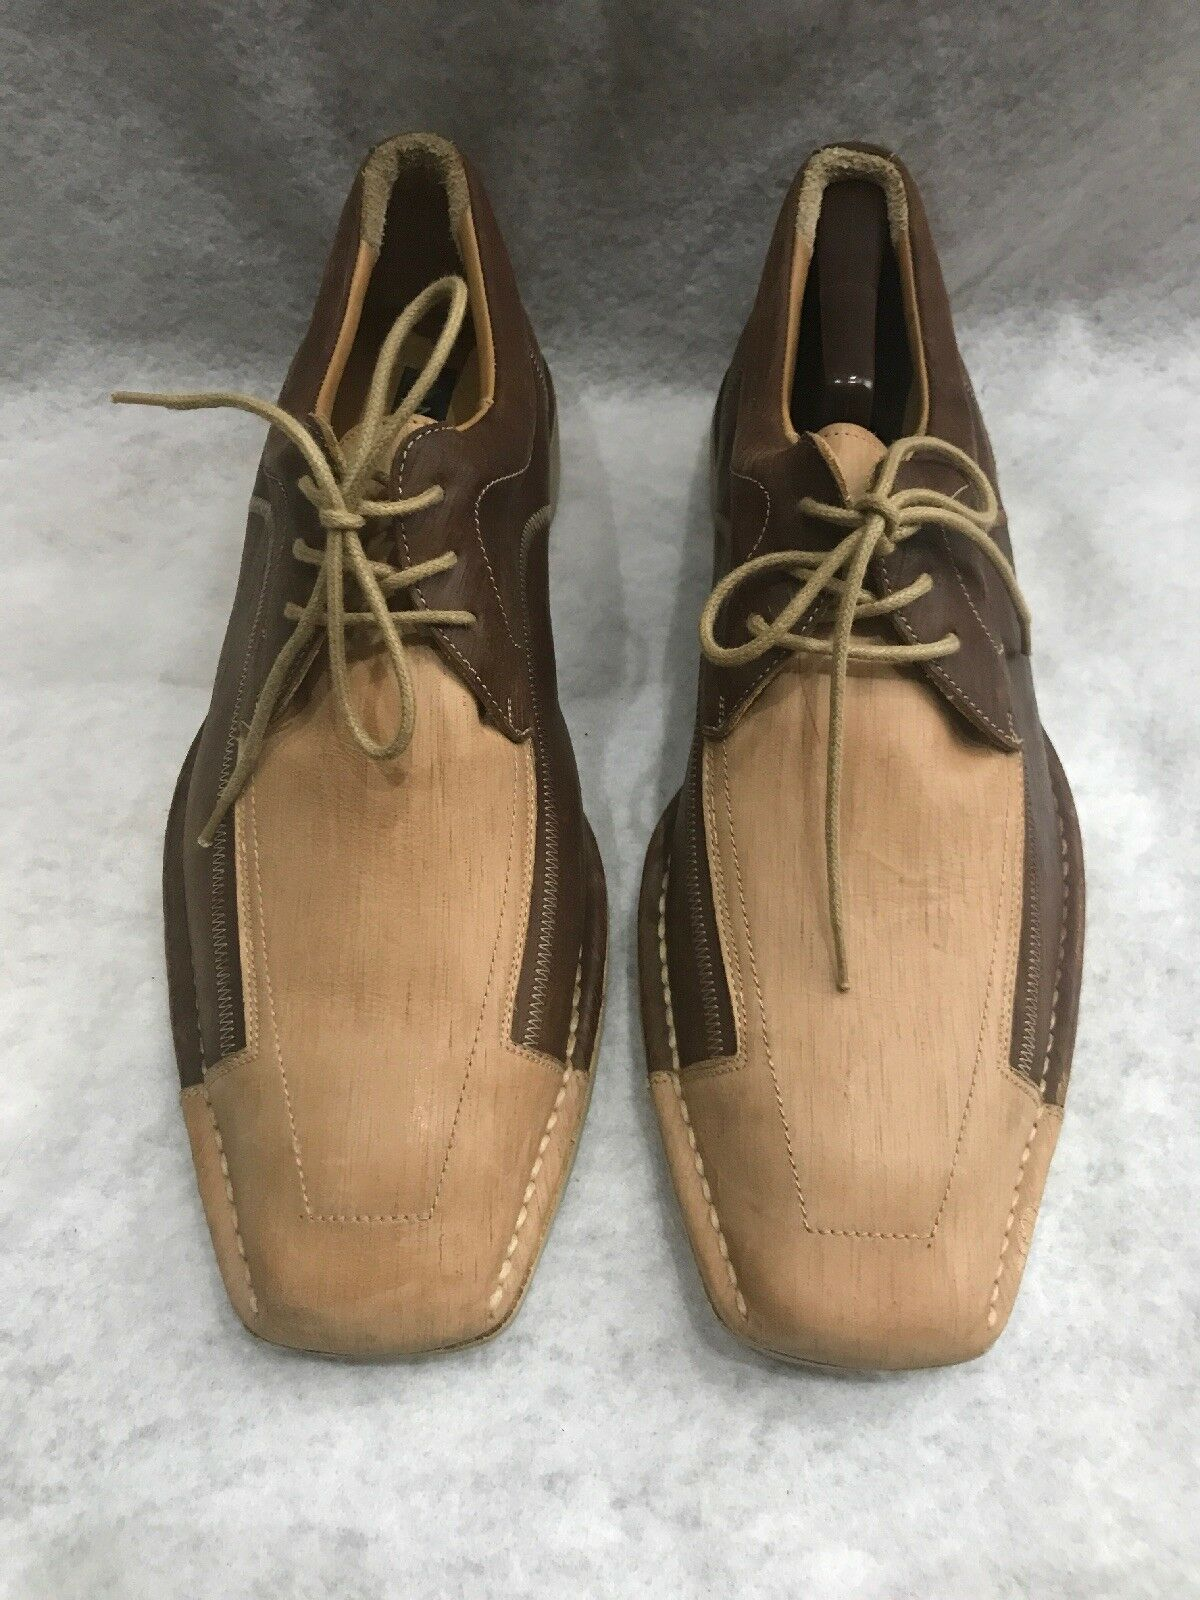 71fe4bc9da Mezlan Galloway Oxford Lace Up shoes Spain Beige Brown Calfskin Leather  11.5 M